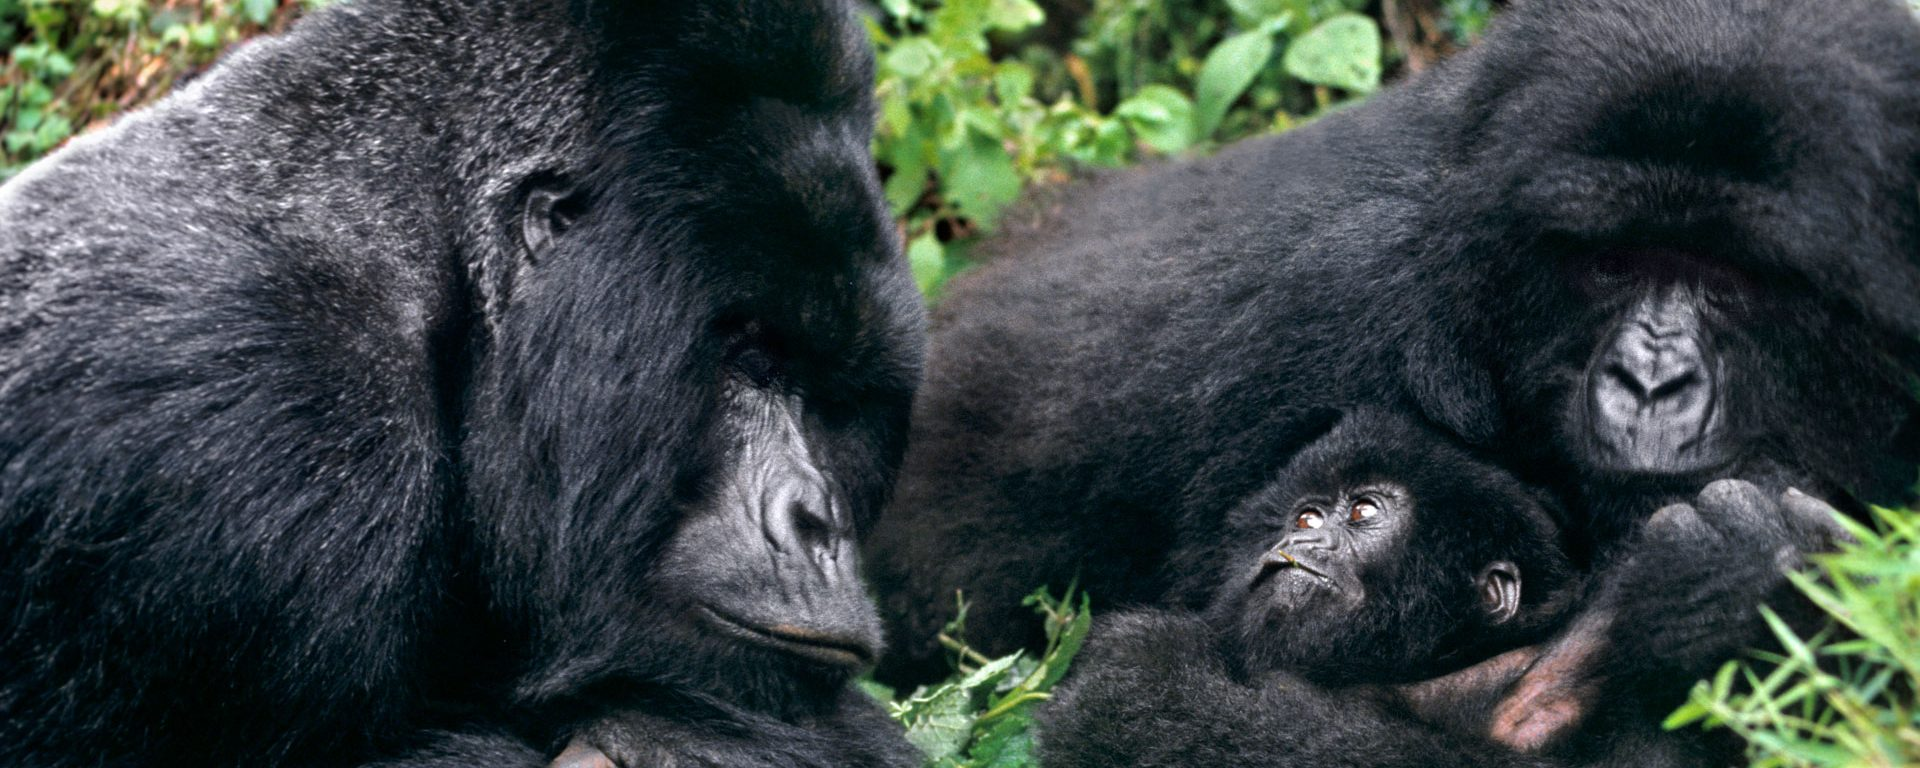 Mountain gorilla family in cloud forest habitat, Virunga National Park, DRC